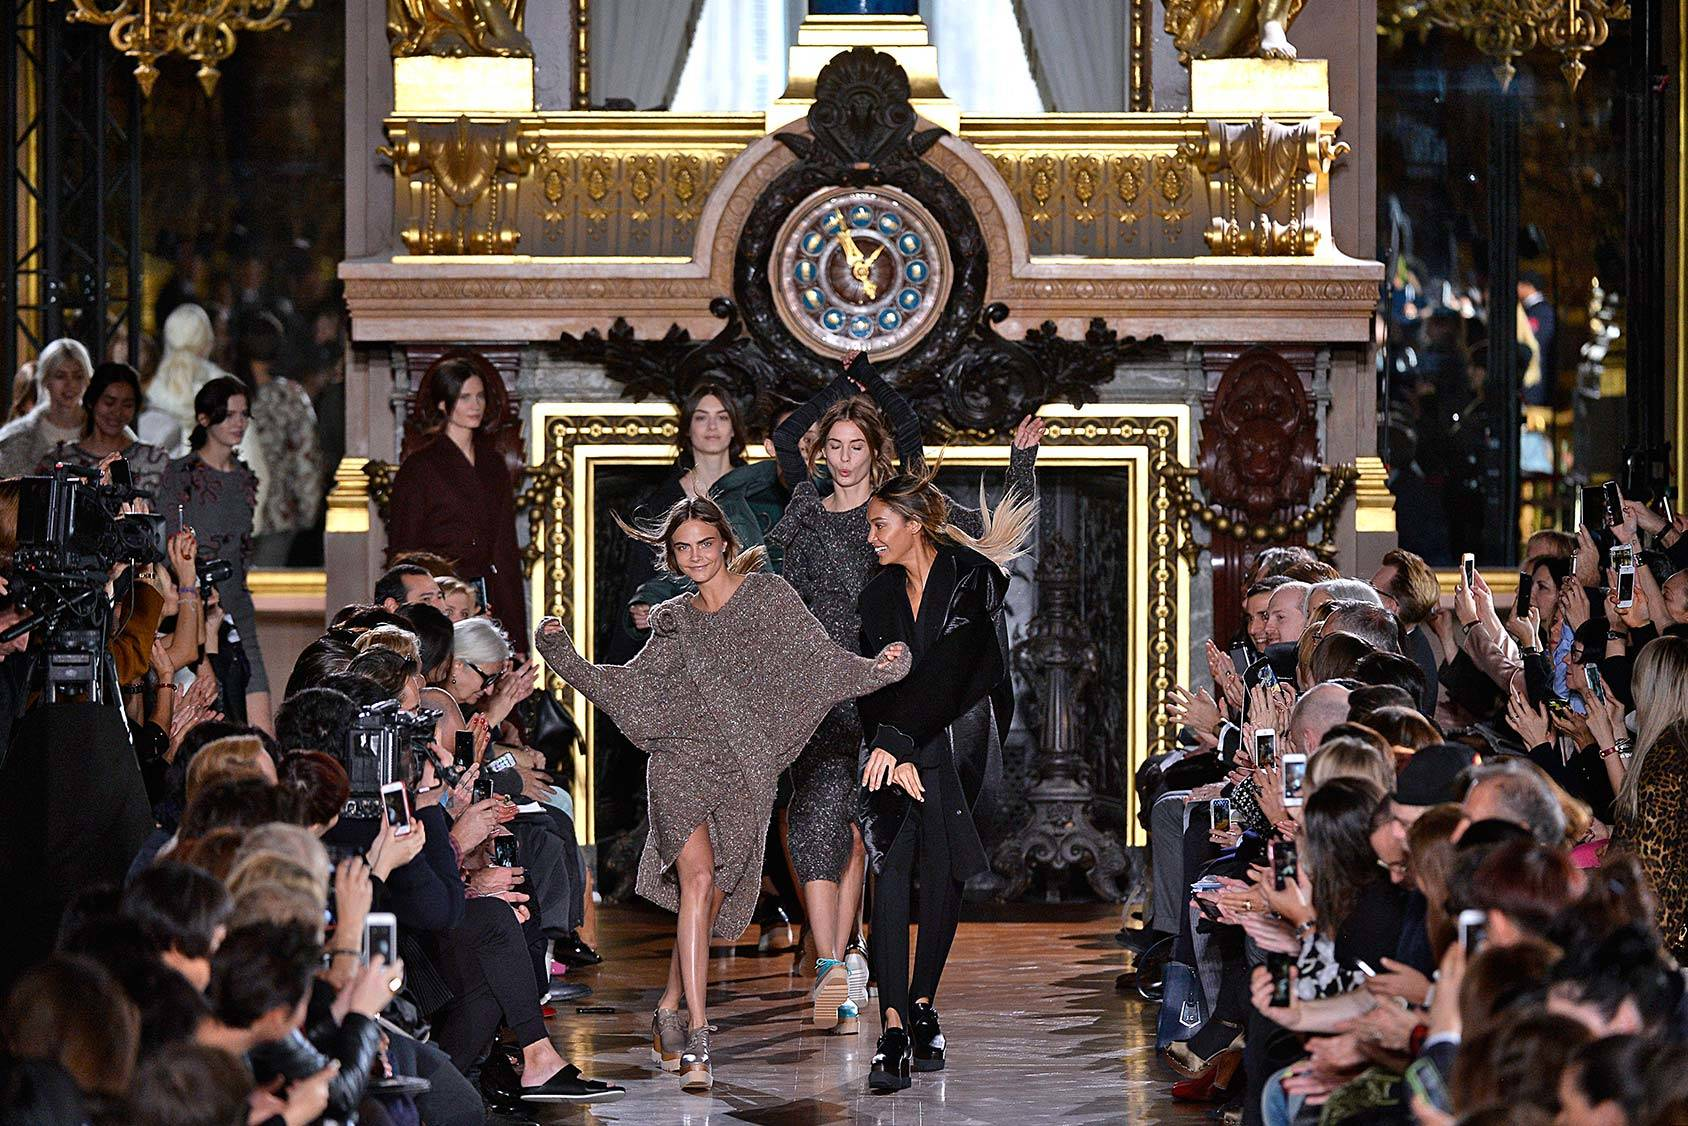 Cara Delevingne and Joan Smalls dance their way down the catwalk at the Stella McCartney Fall/Winter 2014 fashion show, All Over Press.